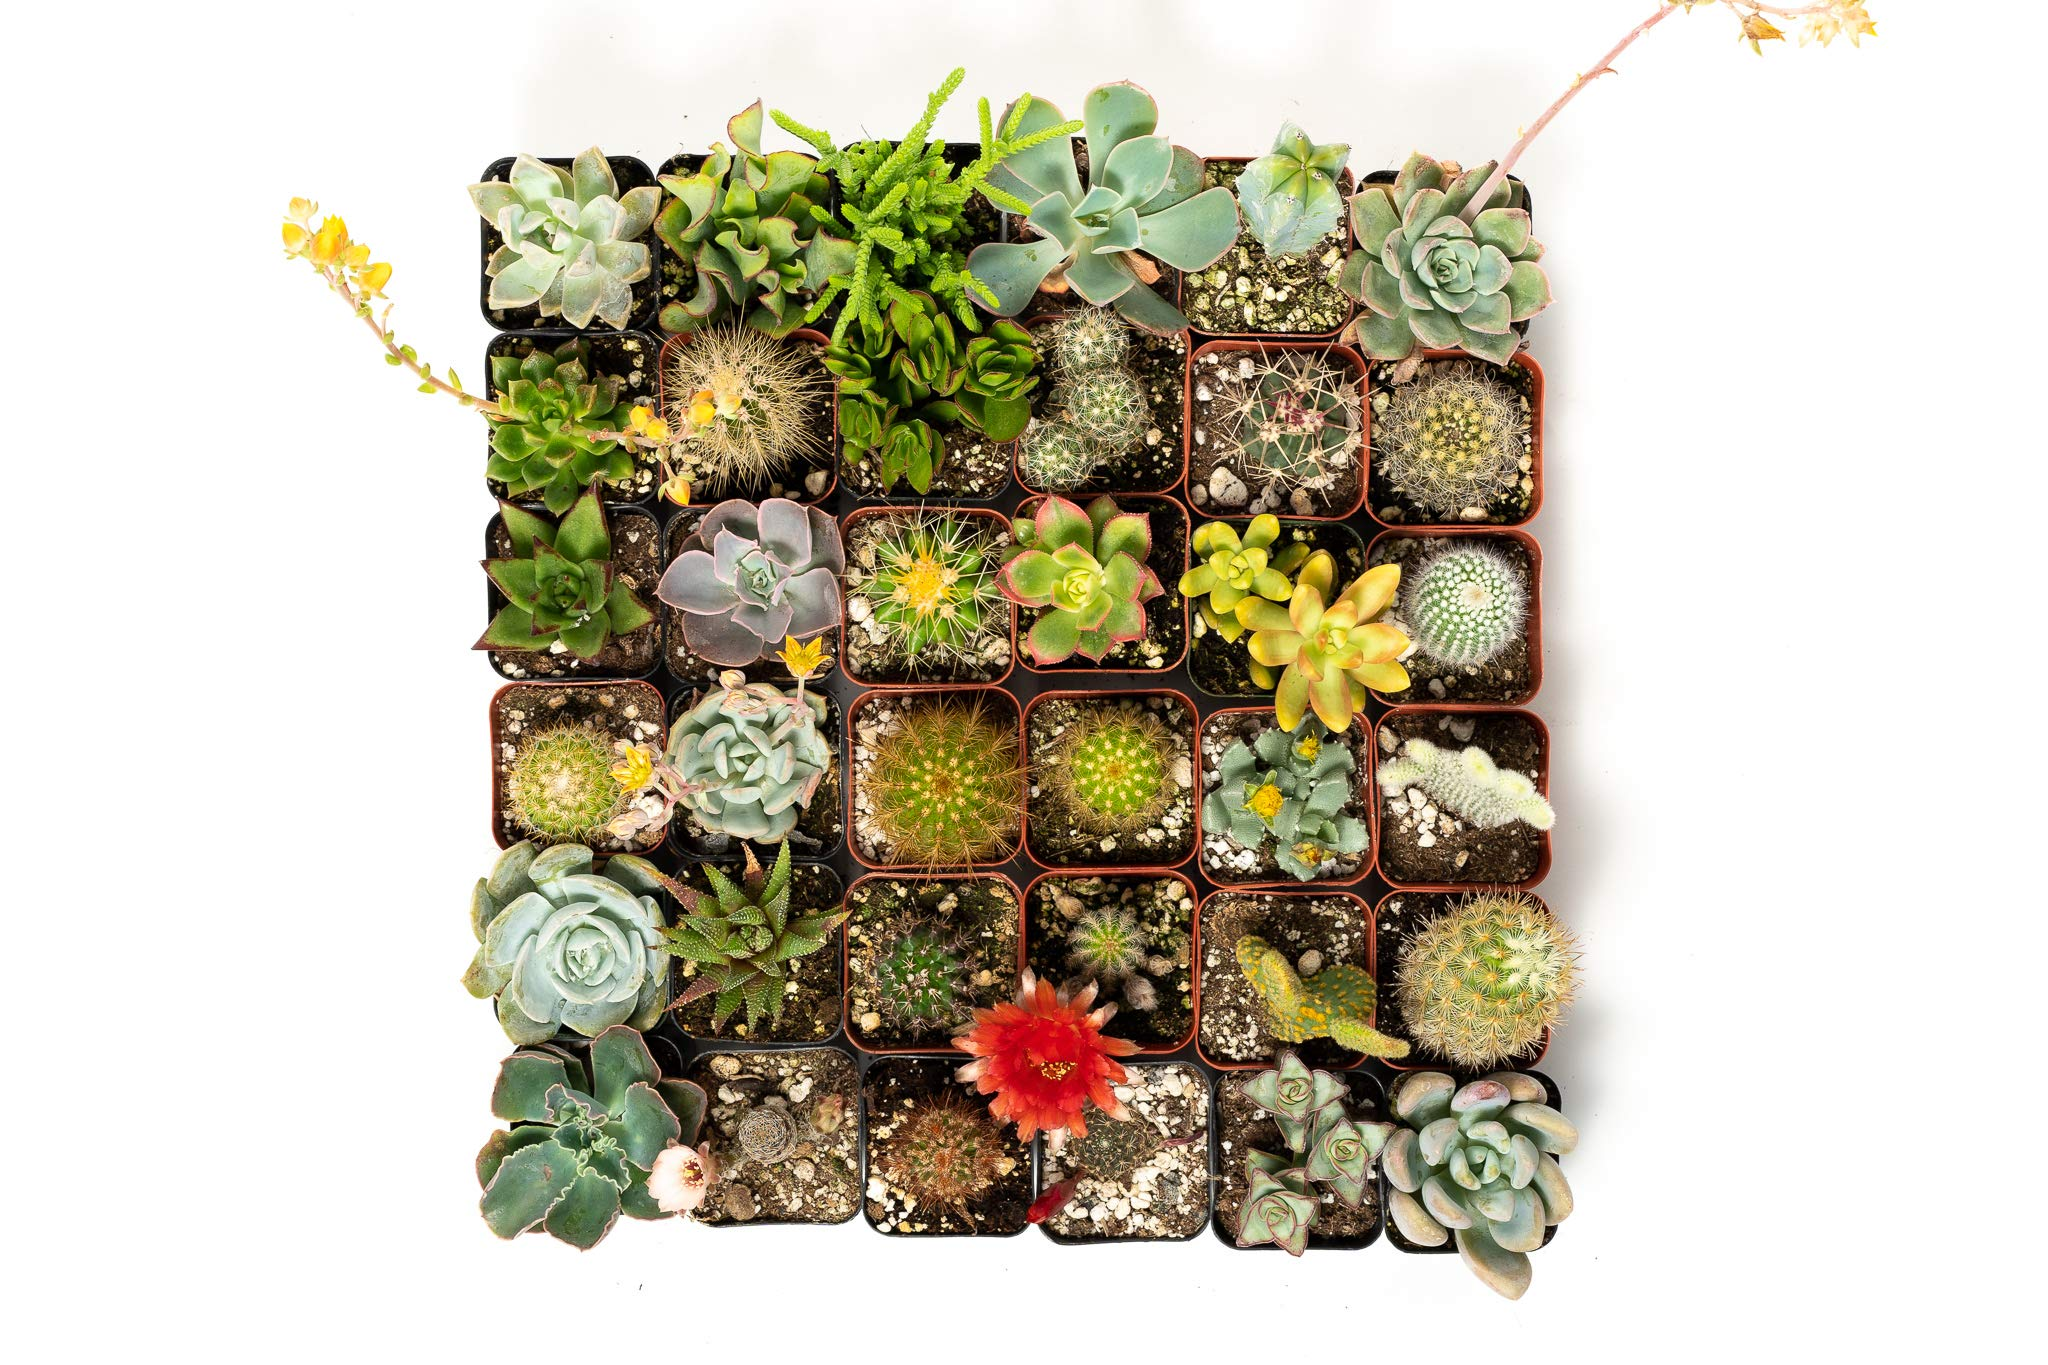 36 Succulent & Cactus Variety Pack- No Two Plants are Alike, Make Your Garden Unique with A Beautiful Collection of Succulents and Cacti - by Jiimz by Jiimz (Image #3)